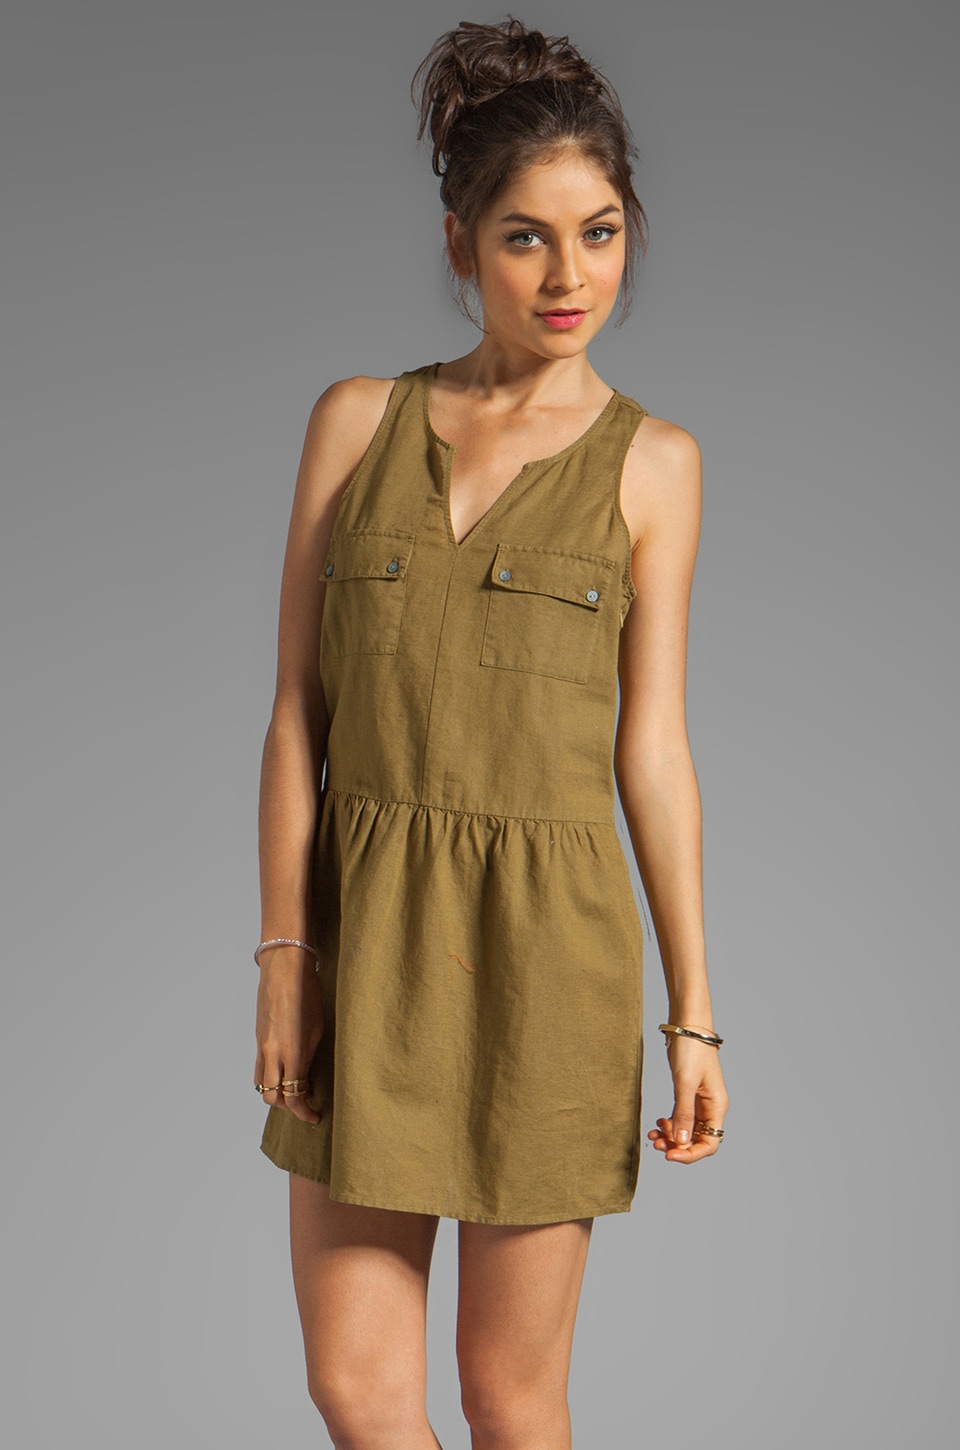 C&C California Linen Cotton Safari Split Neck Tank Dress in Nutria